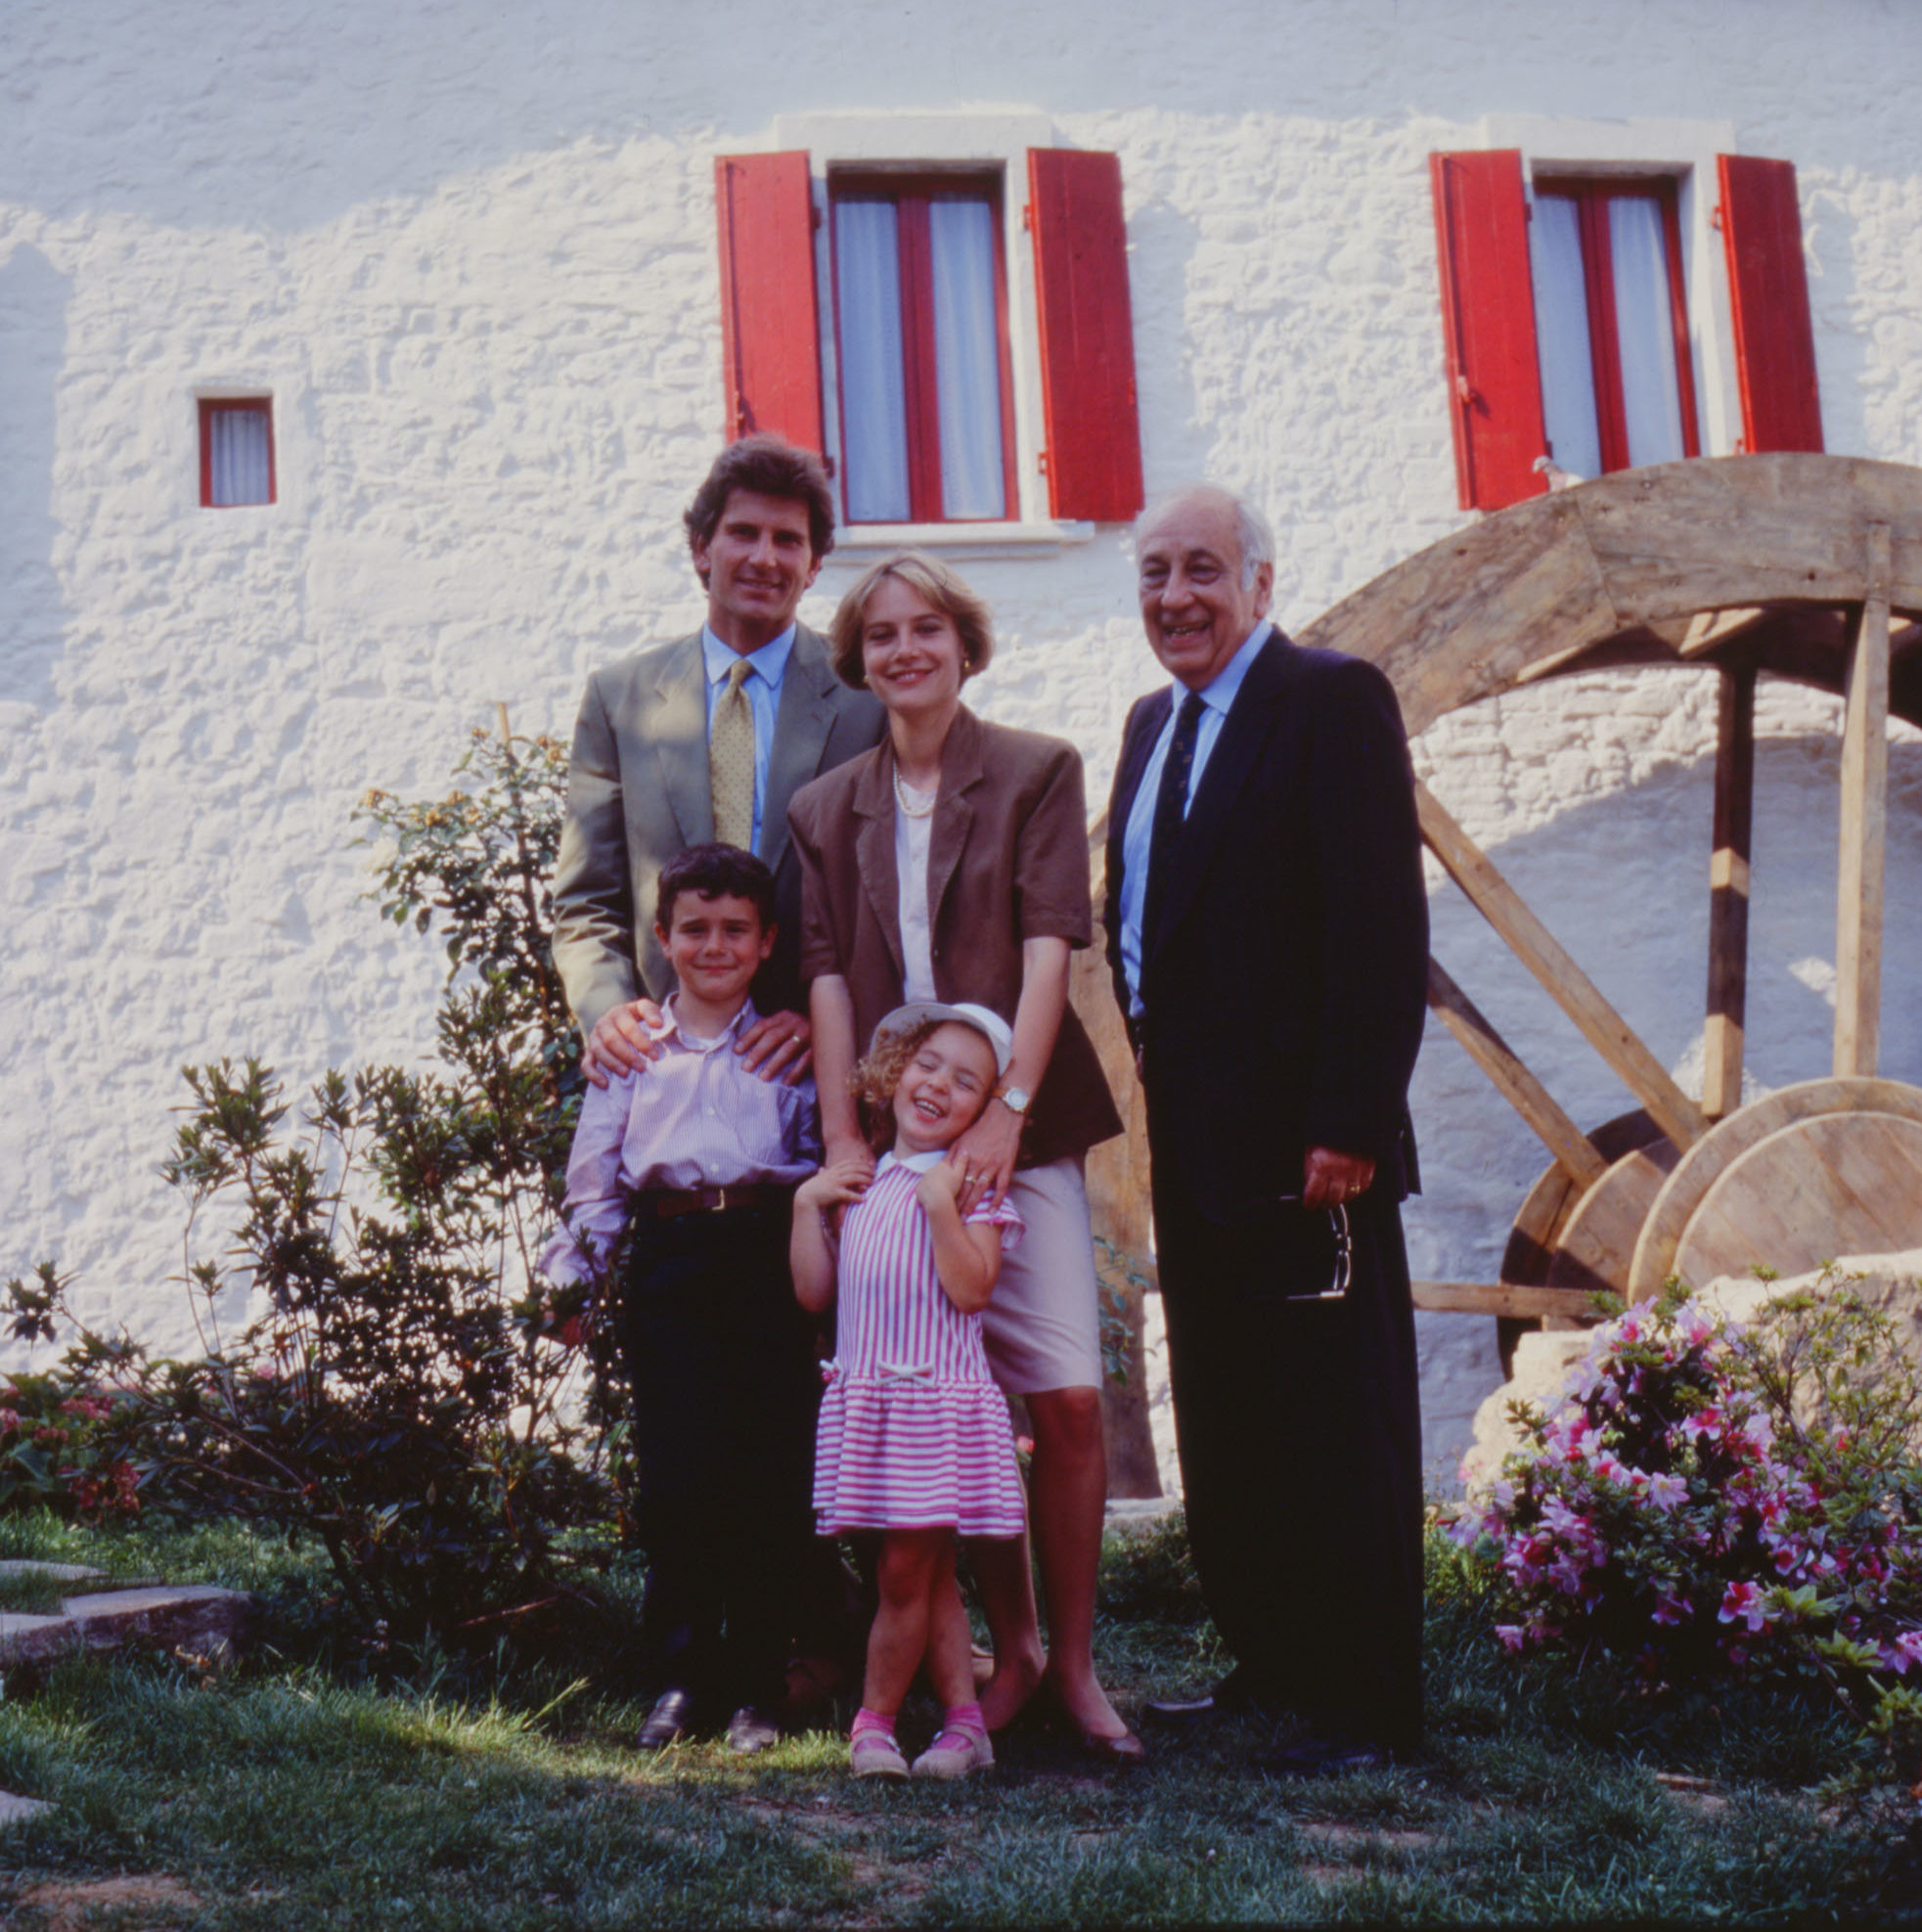 The Family of the Mill poses in front of the wheel of Chiusdino Mill during the shootings of the advertisings in 1990